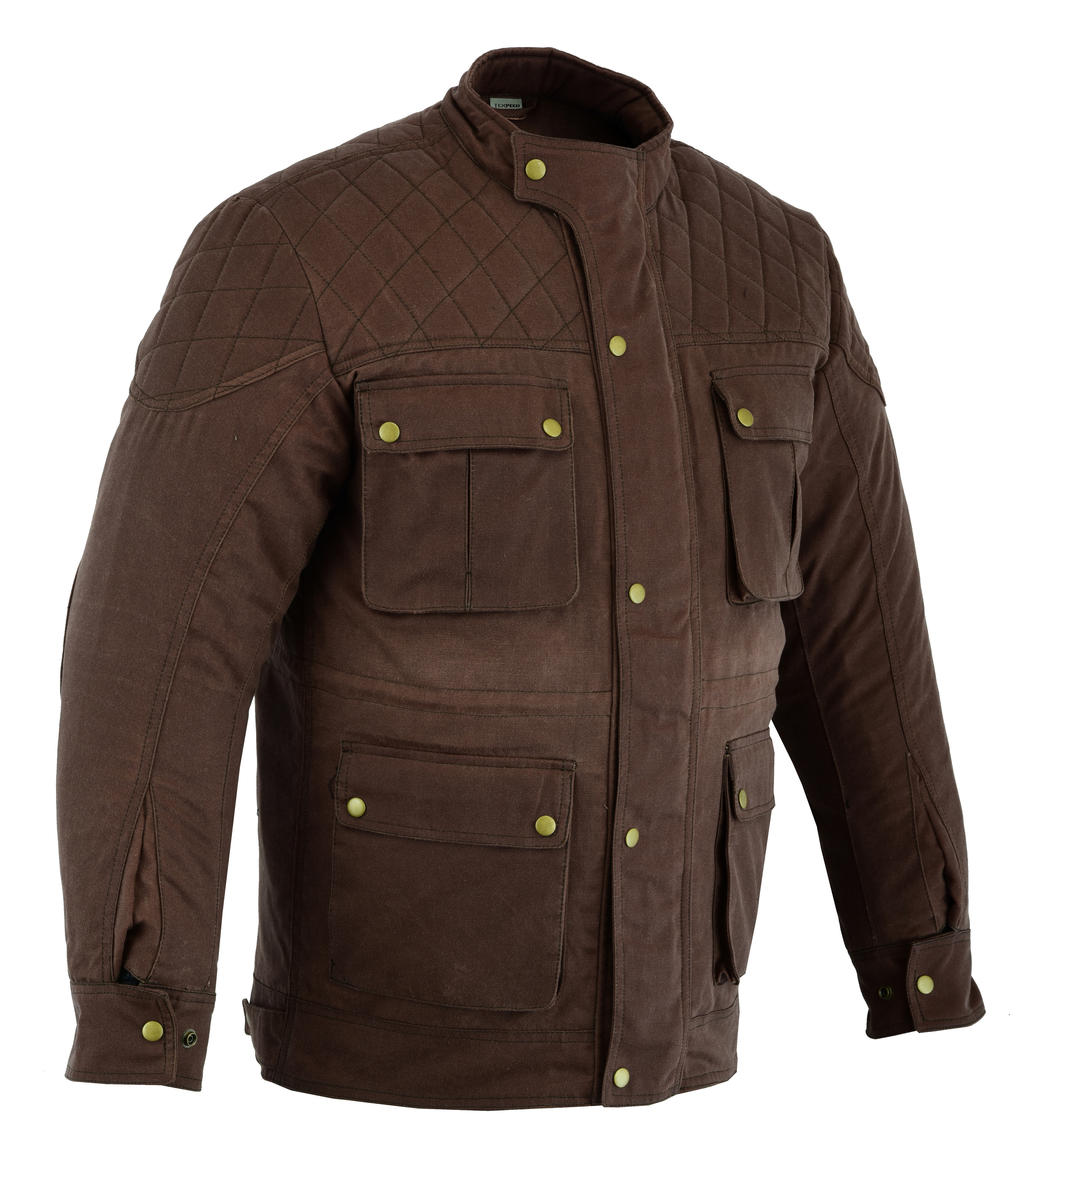 CJ-WAX-BRN-DIA (Long Brown Wax Jacket)